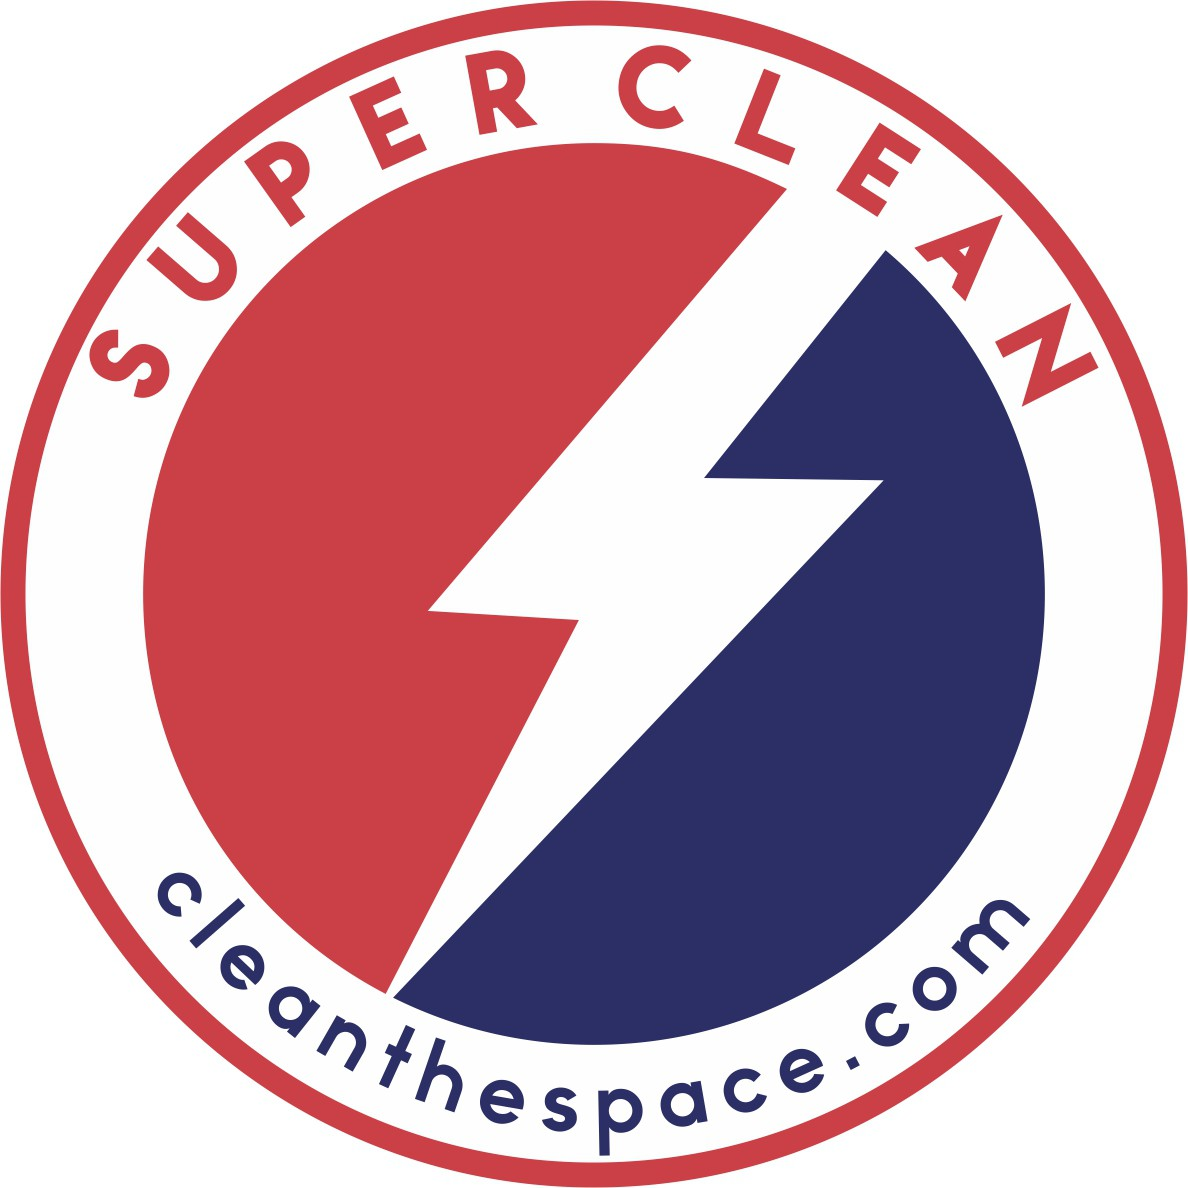 Super Hero styled logo for new company to clean the world